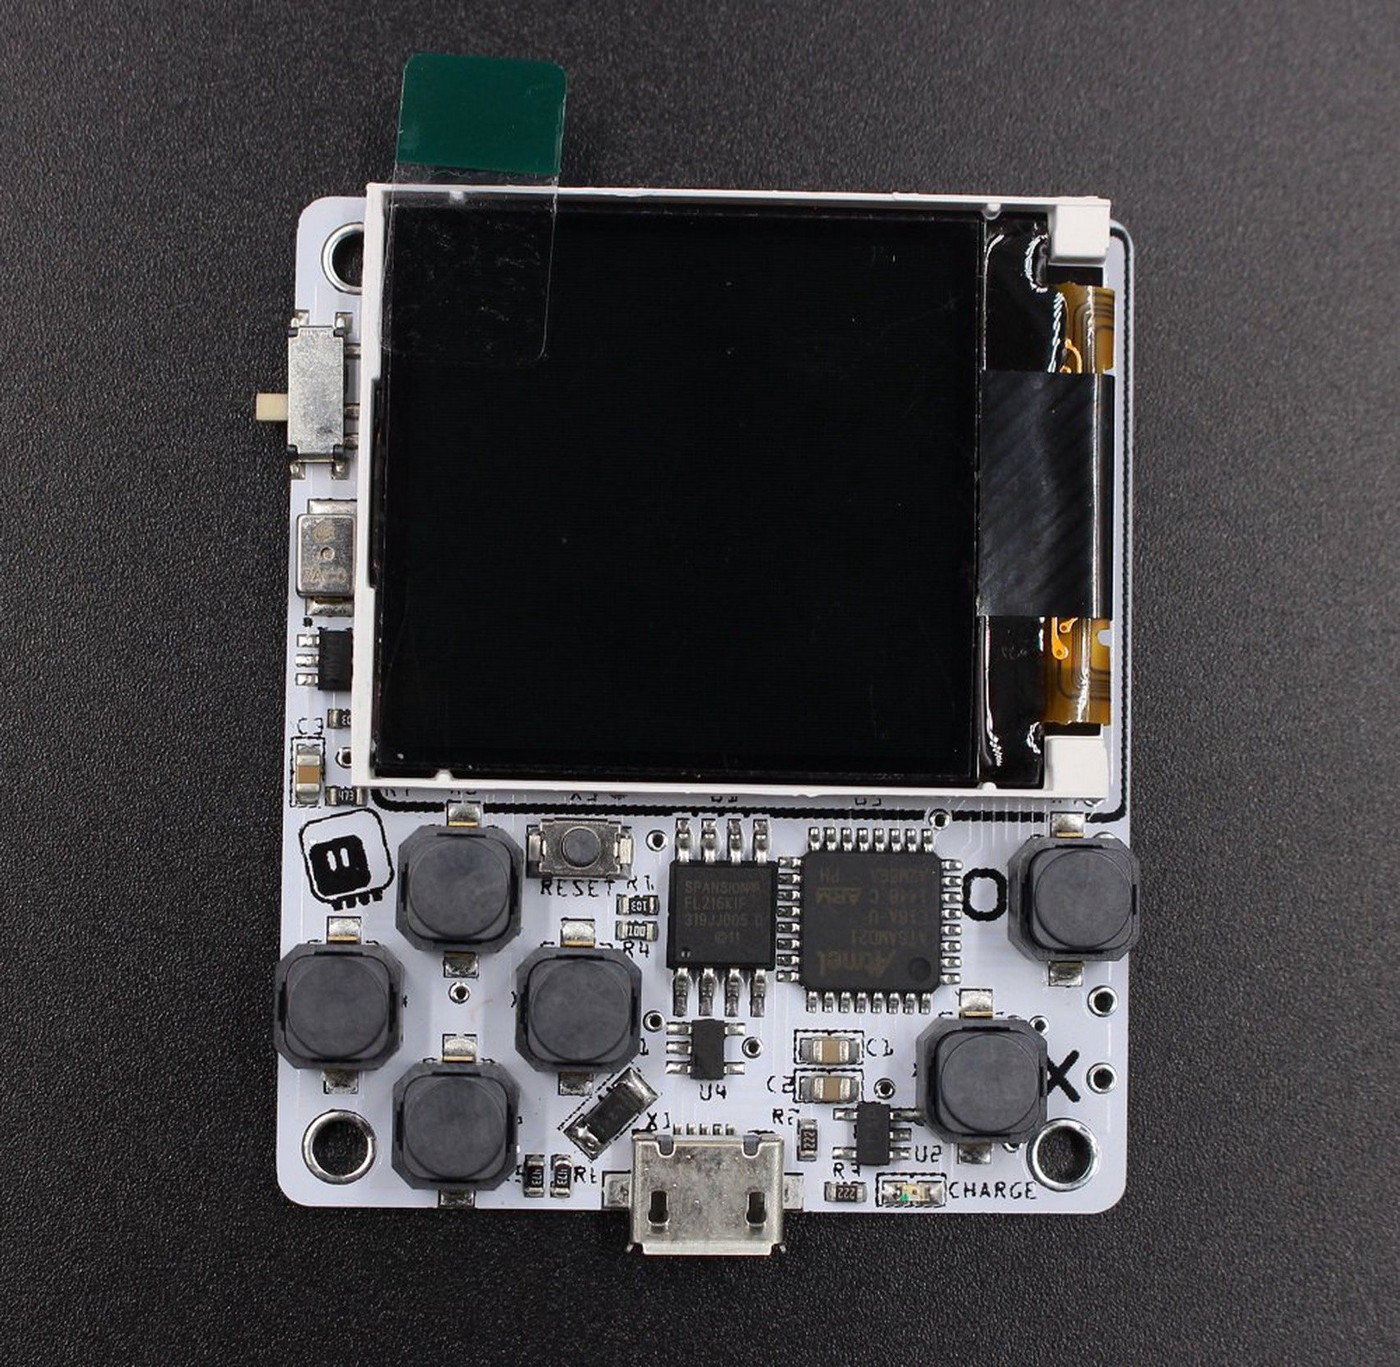 µGame 10 Is a Tiny, Python-Programmable Game Console